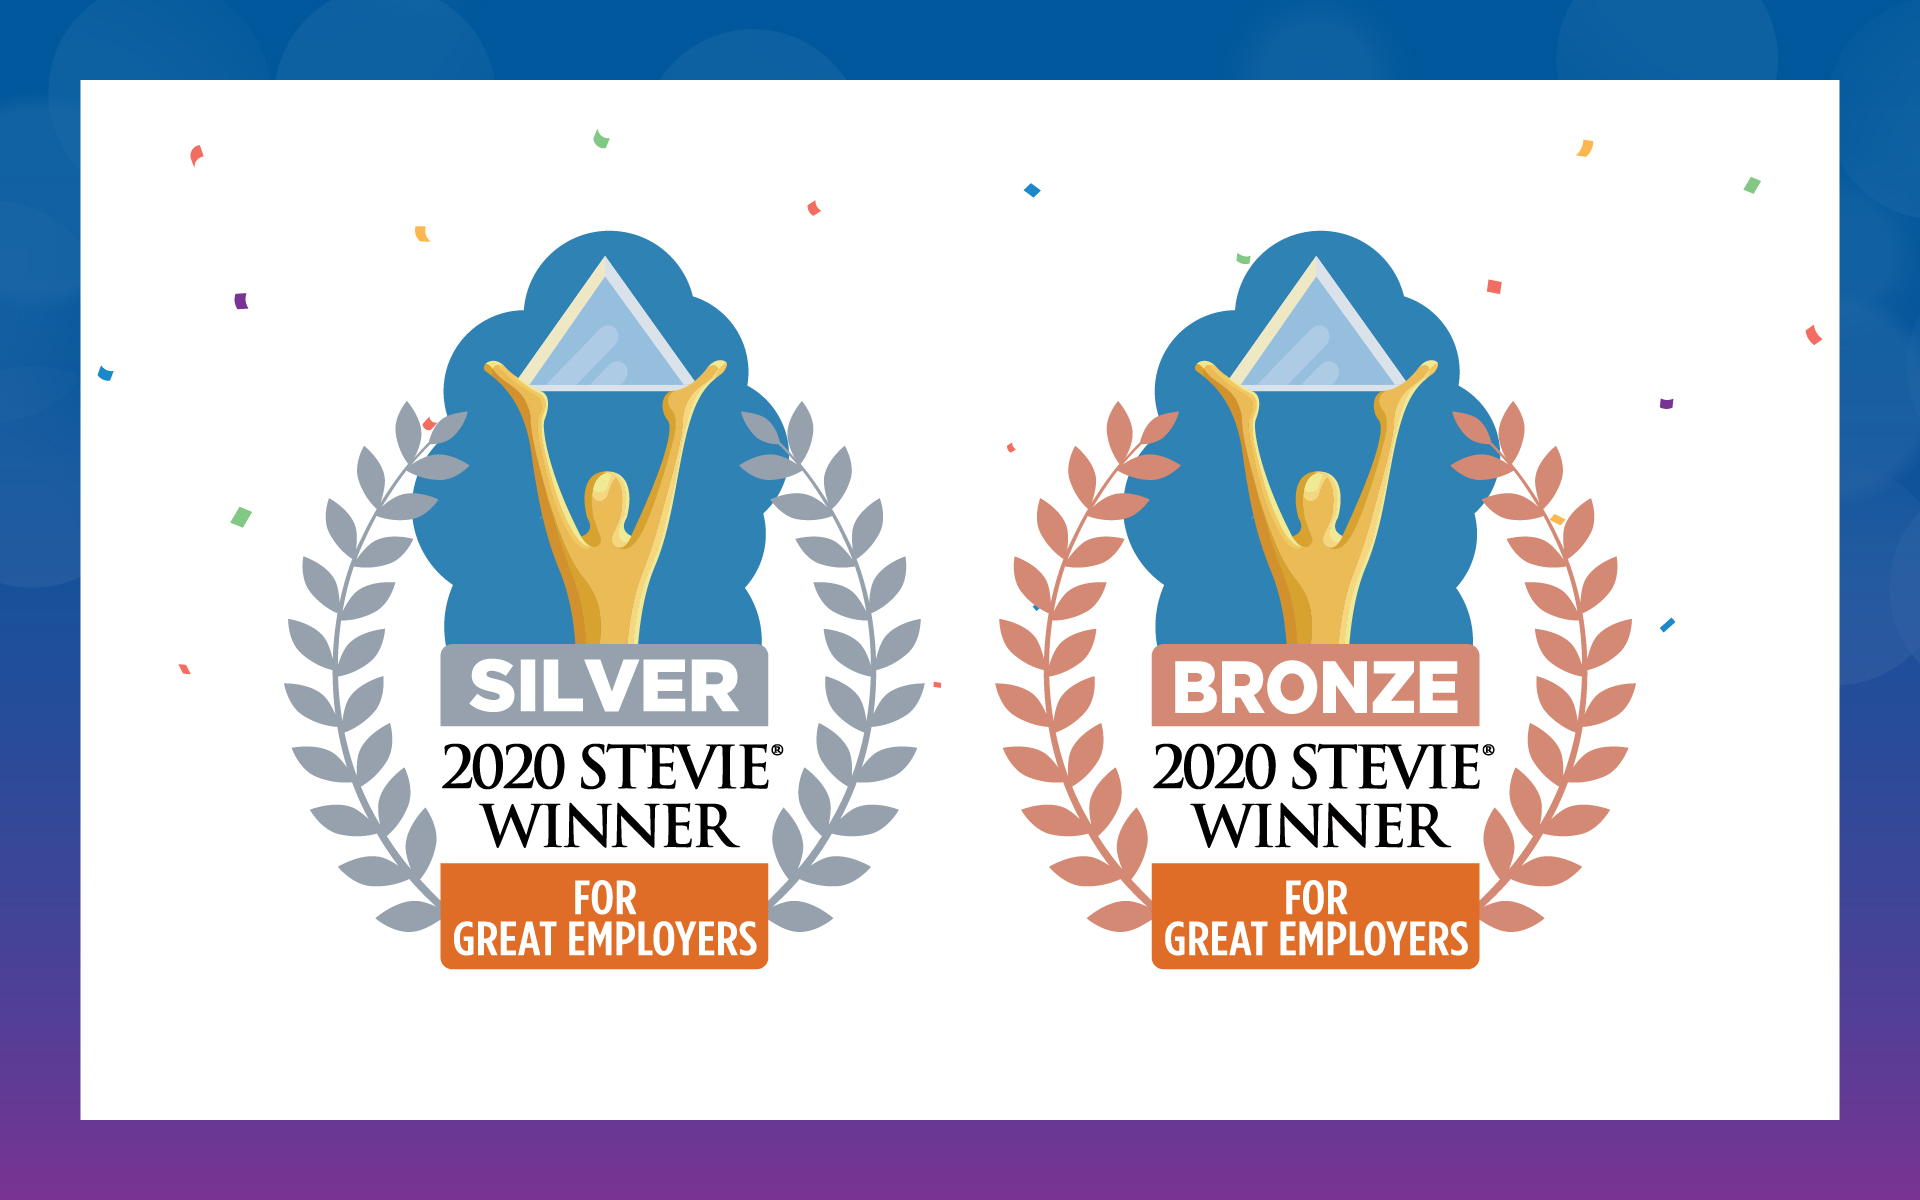 SYKES Wins Silver & Bronze Stevies® for COVID-19 Response